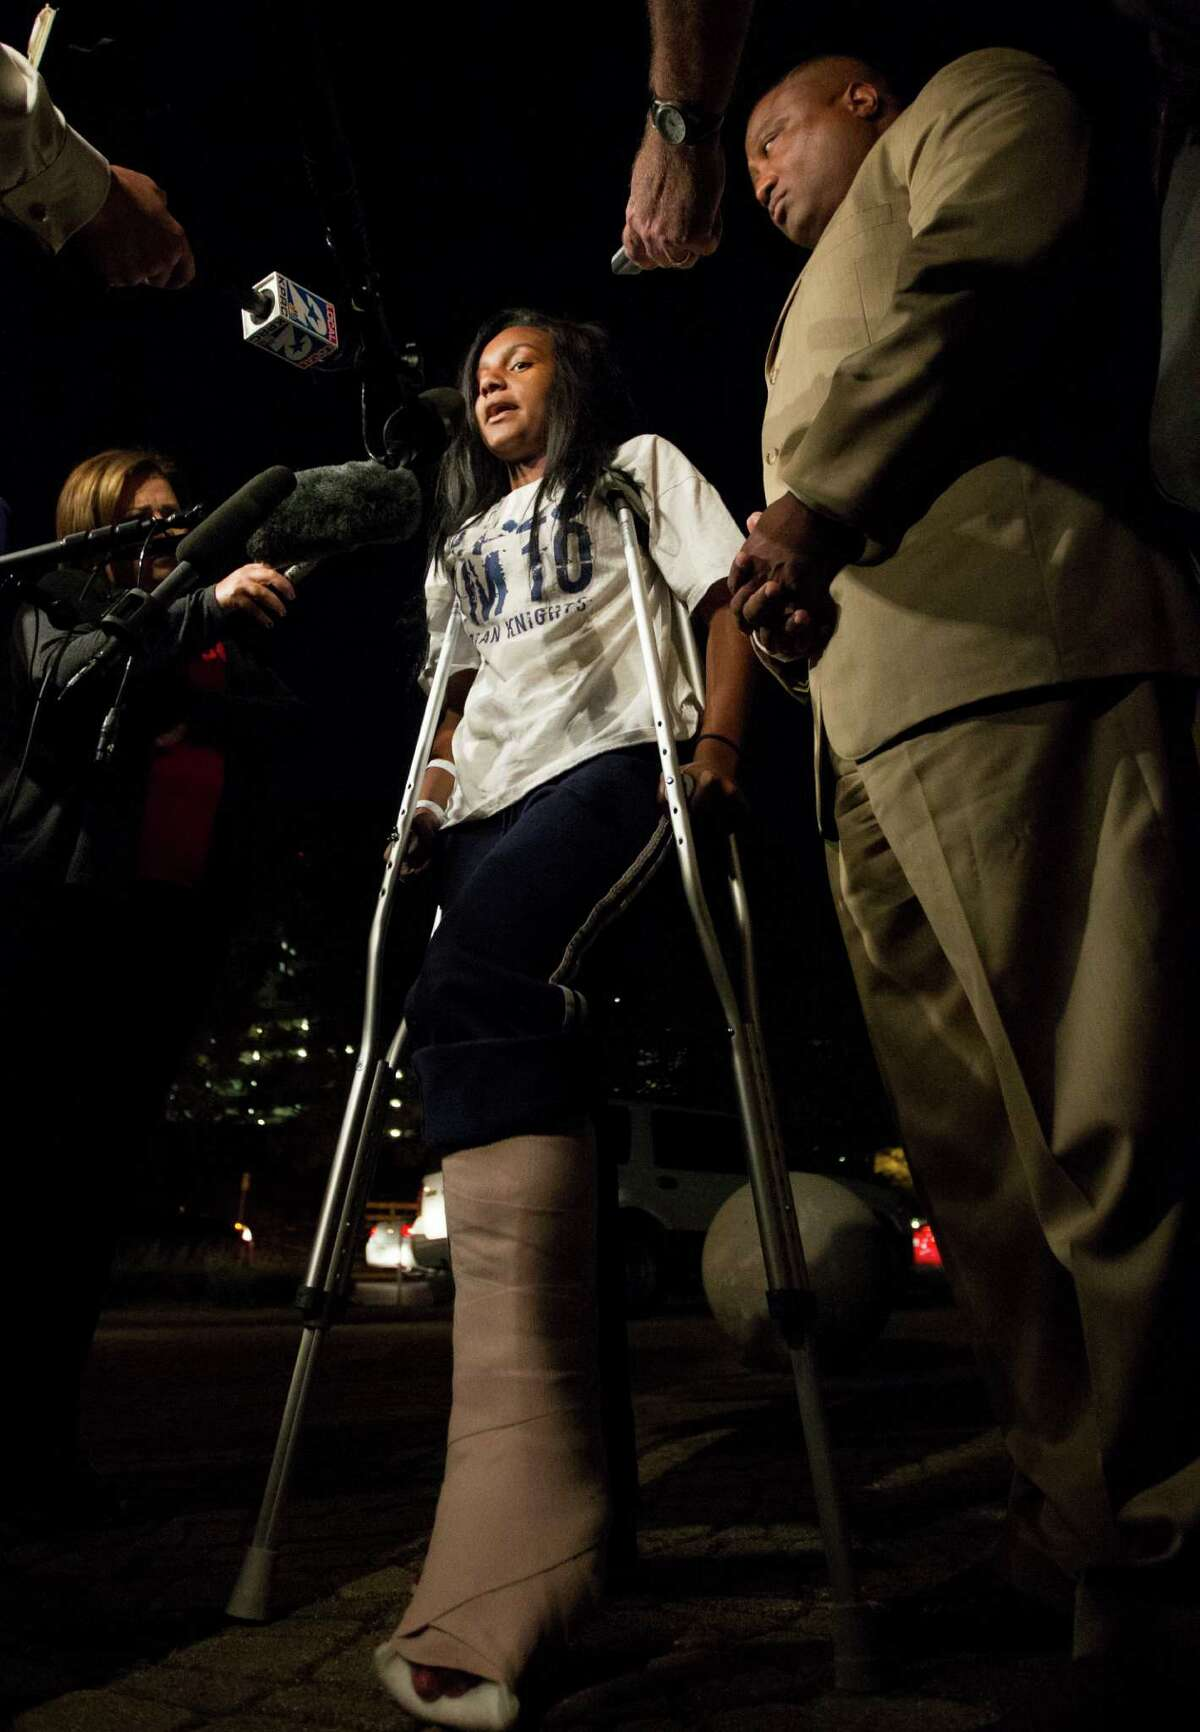 Quanell X stands with Brayiannia Young during a press conference outside Ben Taub hospital on Monday, Nov. 11, 2013, in Houston. Brayiannia was shot during a house party where two people were killed and 19 injured in the Cypress area on Saturday night. Her brother, Willie Young, 21, was arrested and charged with deadly conduct on Monday. A second suspect Randy Stewart, 18, was arrested and charged with aggravated assault. She claims her brother could not have done the shooting.